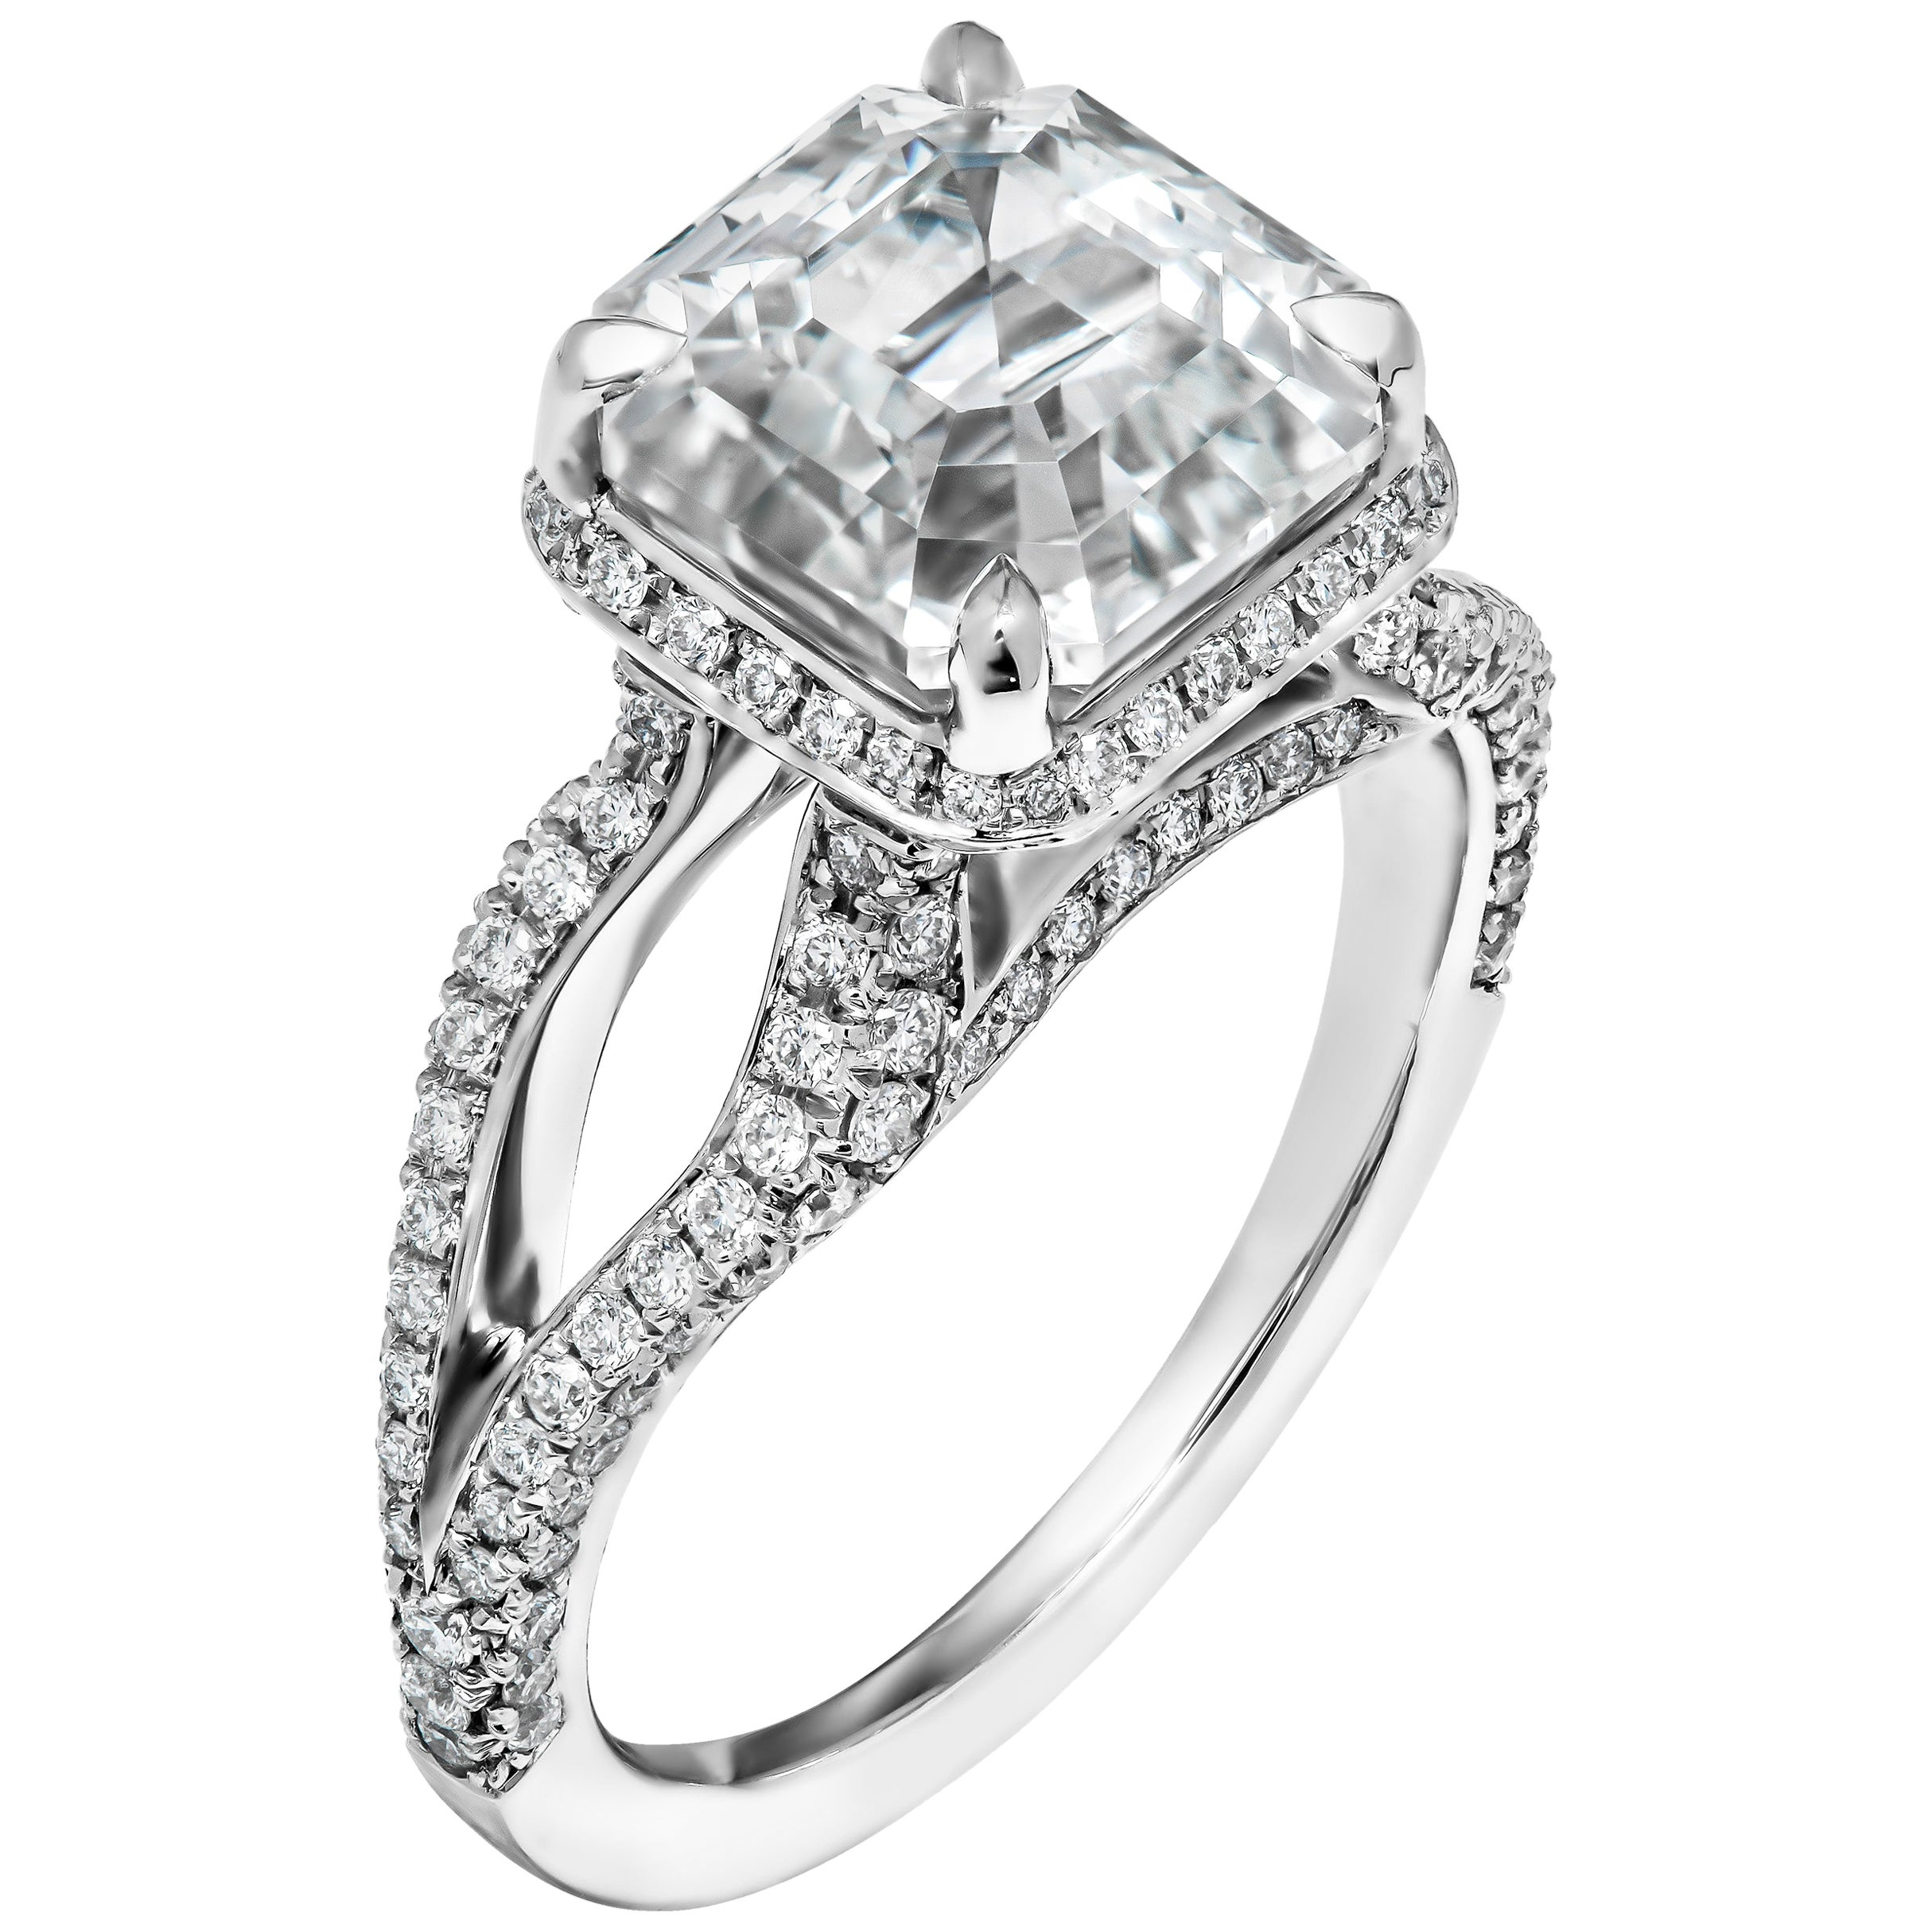 GIA Certified Ring with 4.78 Carat White Sapphire